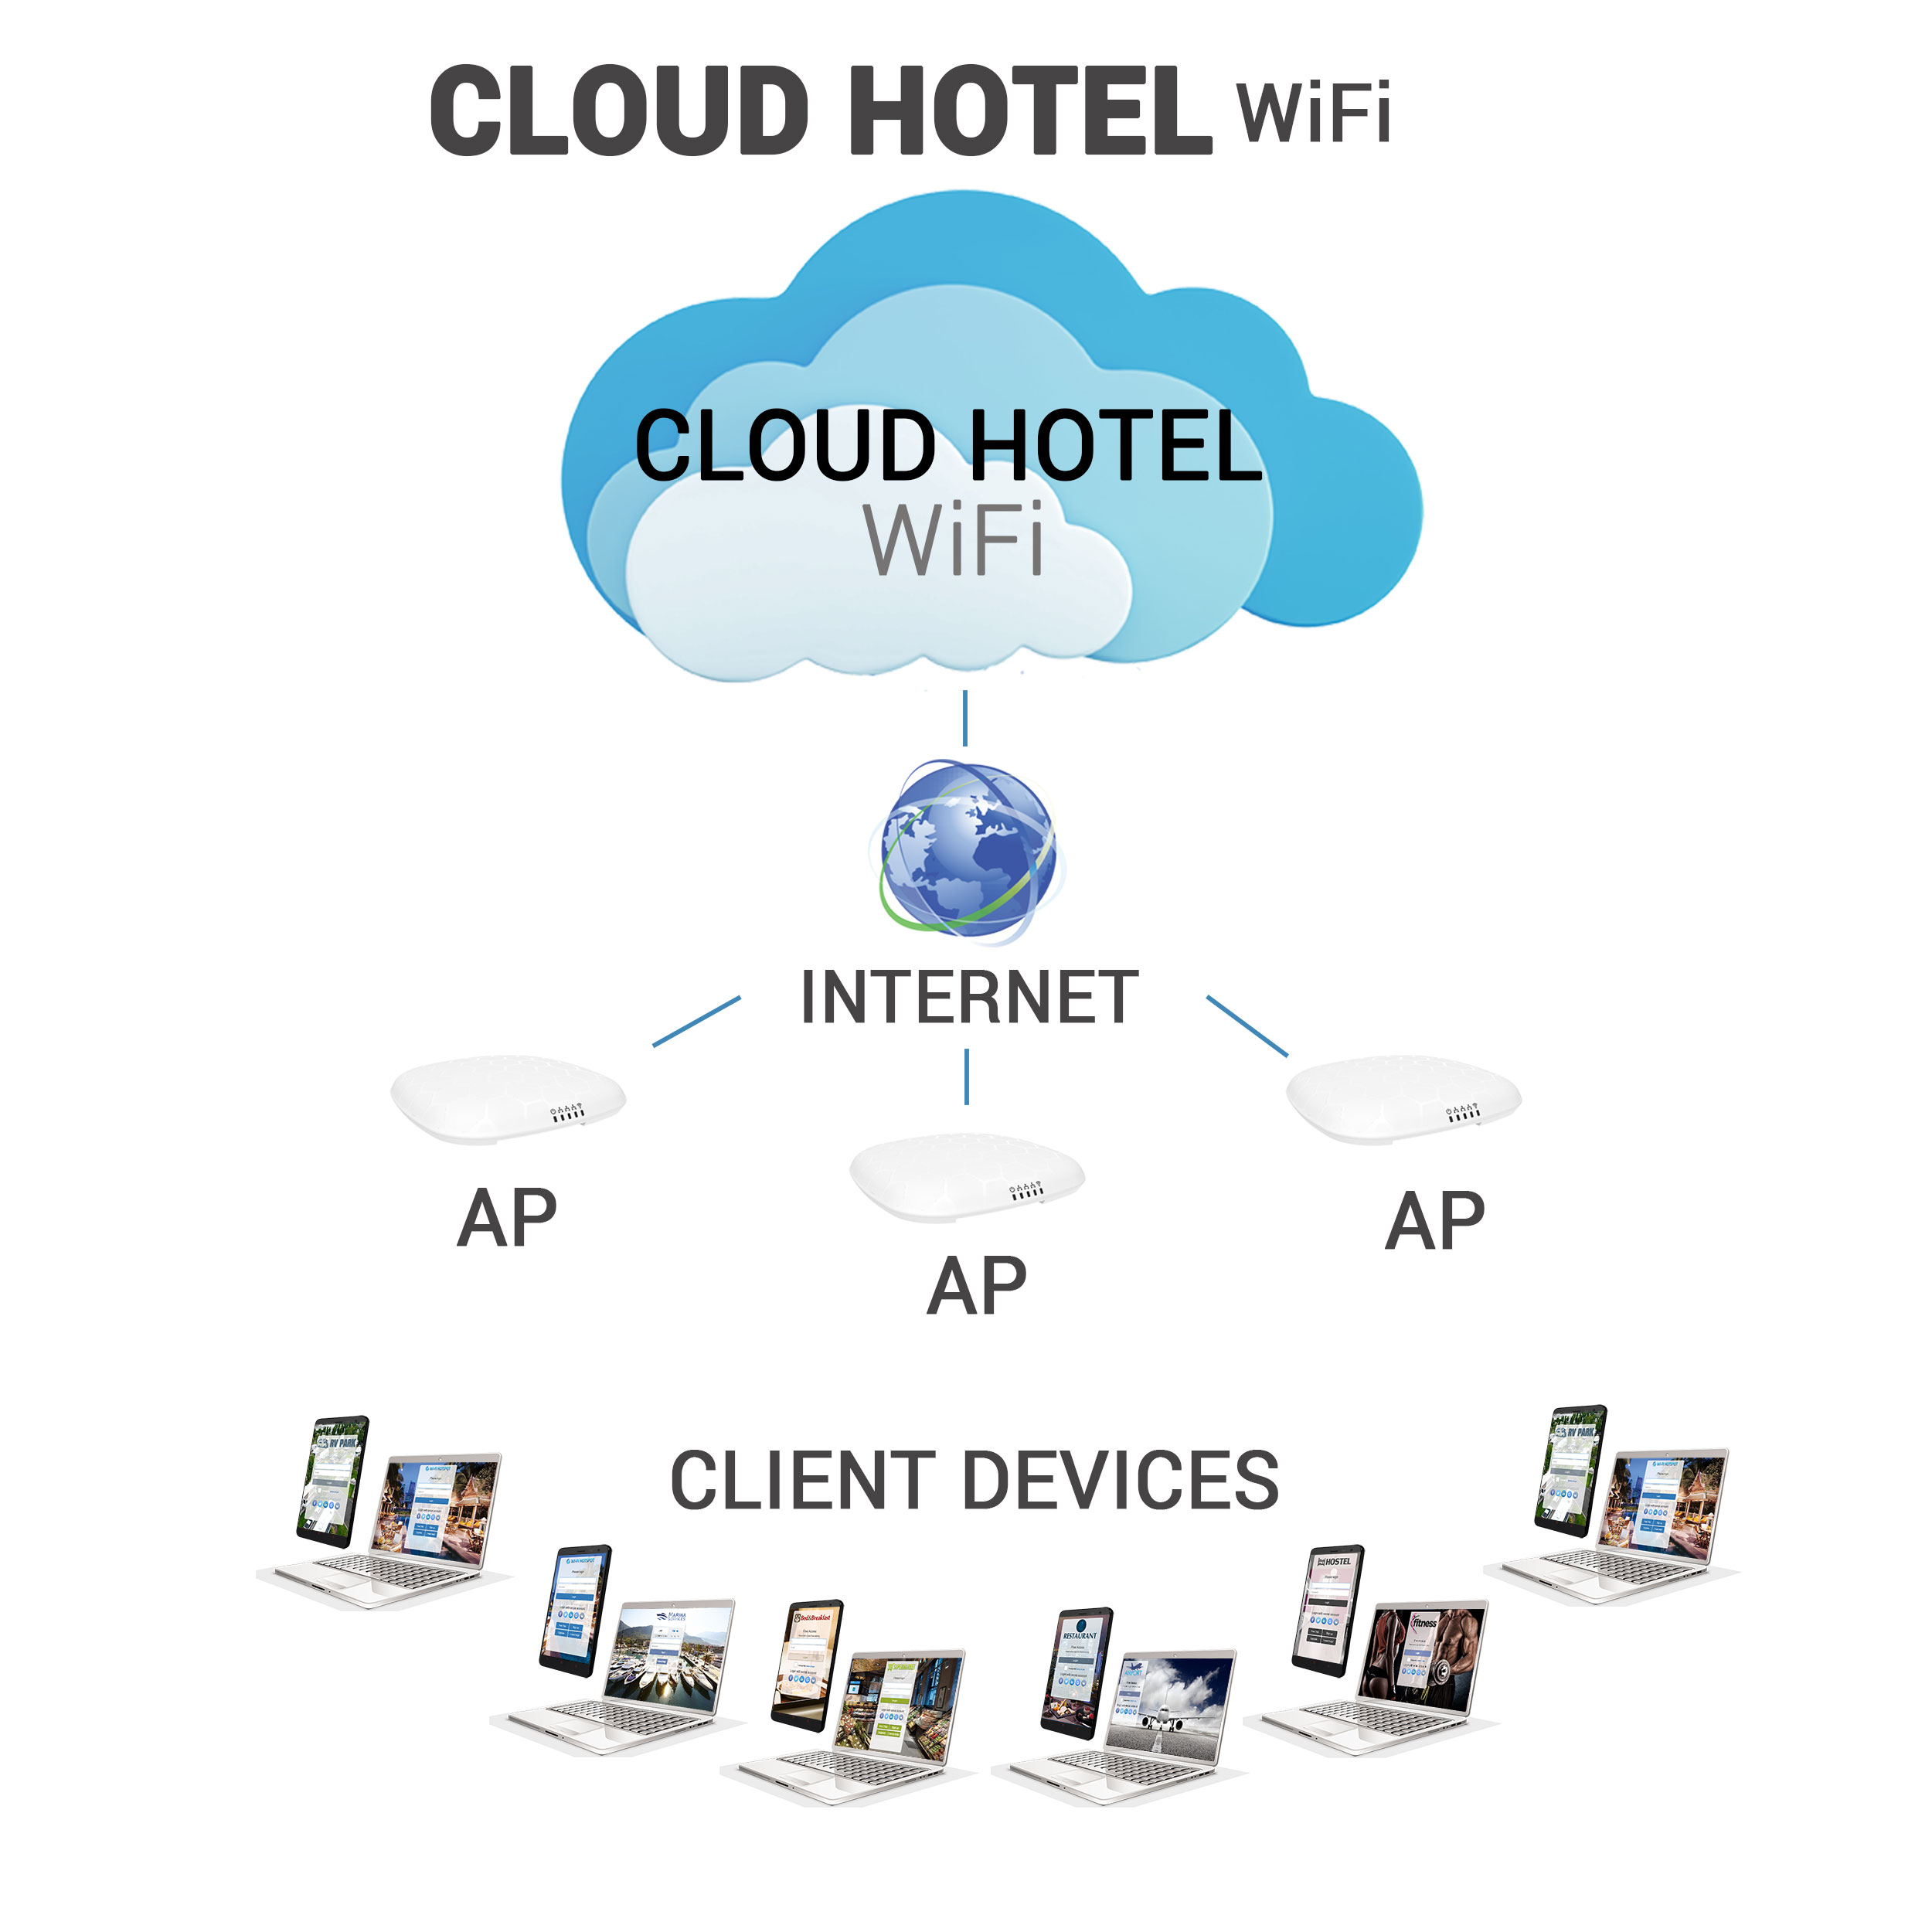 Cloud Hotel WiFi